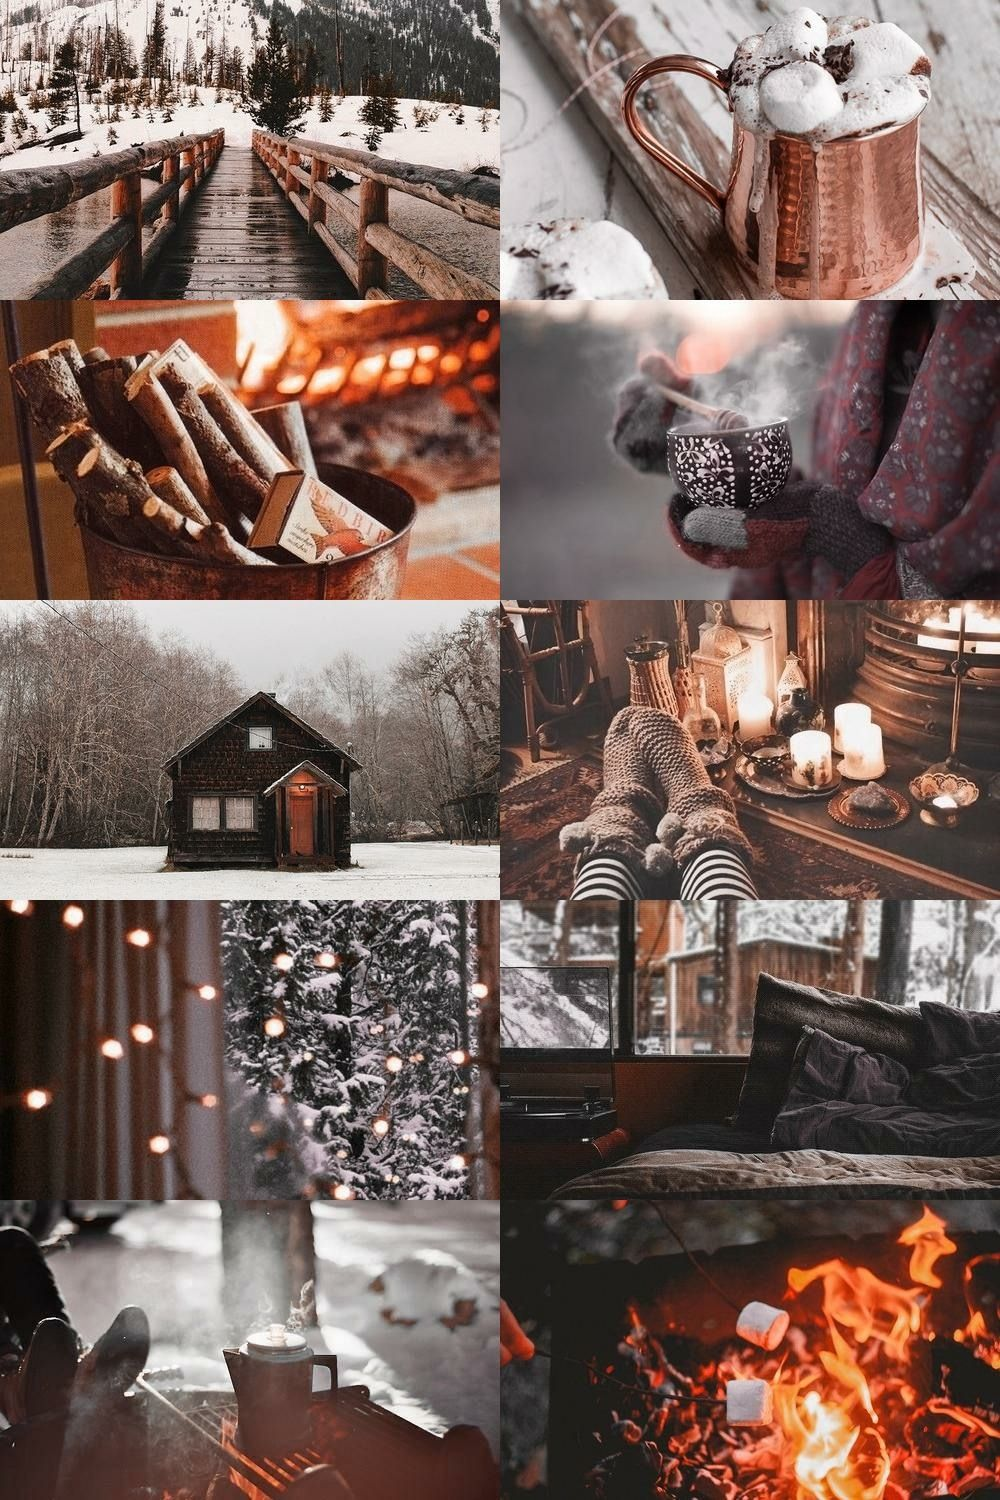 Pin By Kathy Parker On Fall Christmas Aesthetic Christmas Wallpaper Winter Time